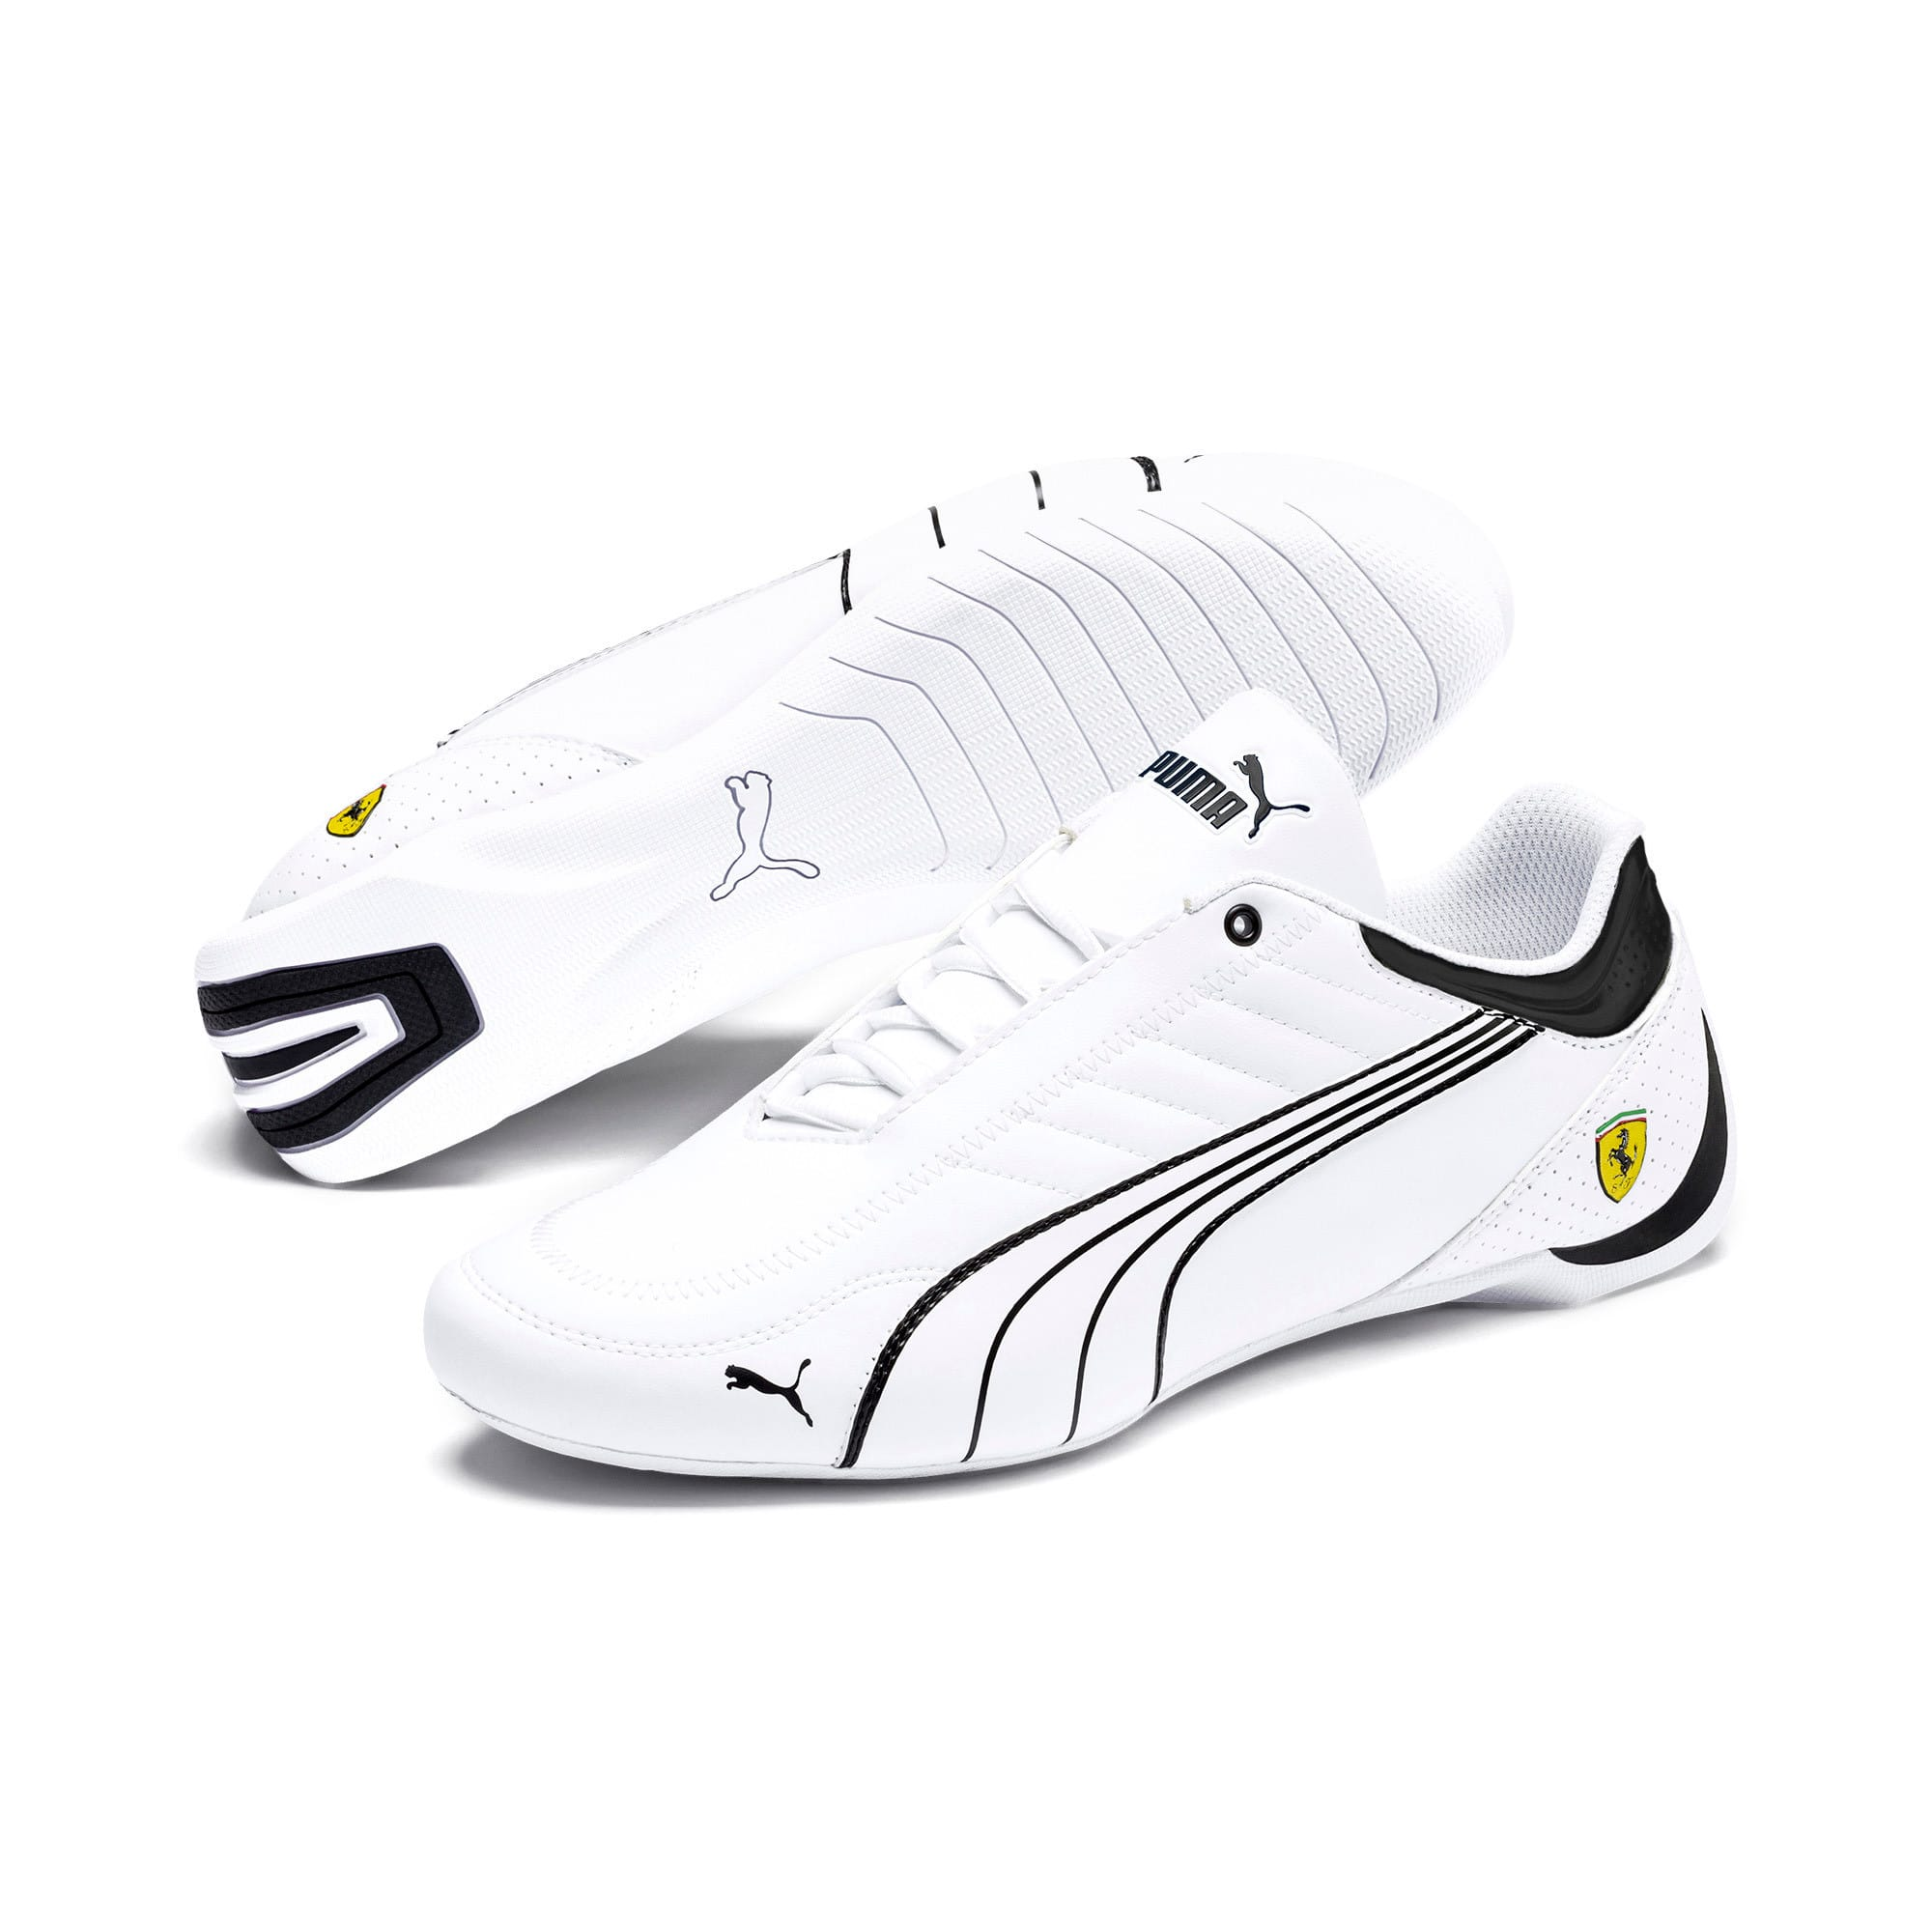 Thumbnail 3 of Scuderia Ferrari Future Kart Cat Shoes, White-Black-Galaxy Blue, medium